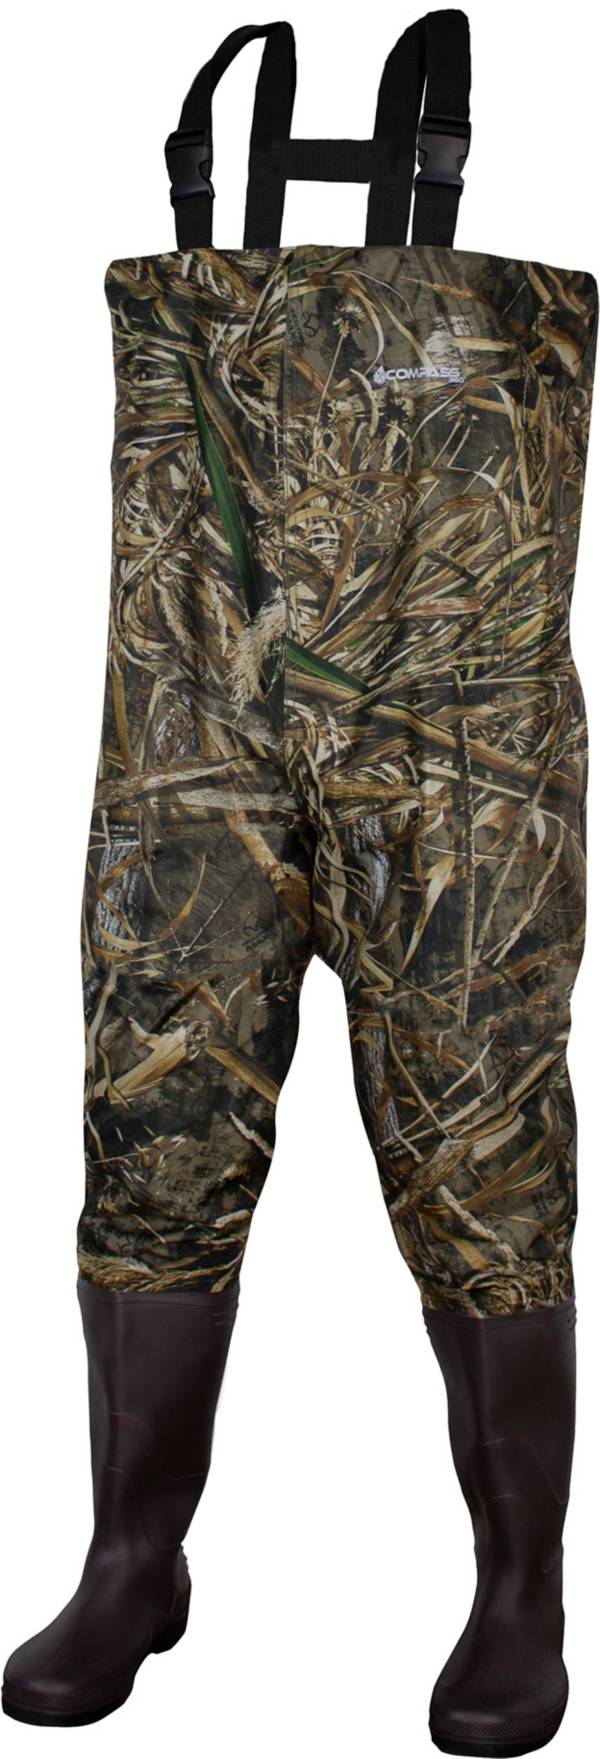 Compass 360 WINDWARD Camo PVC Bootfoot Chest Waders product image